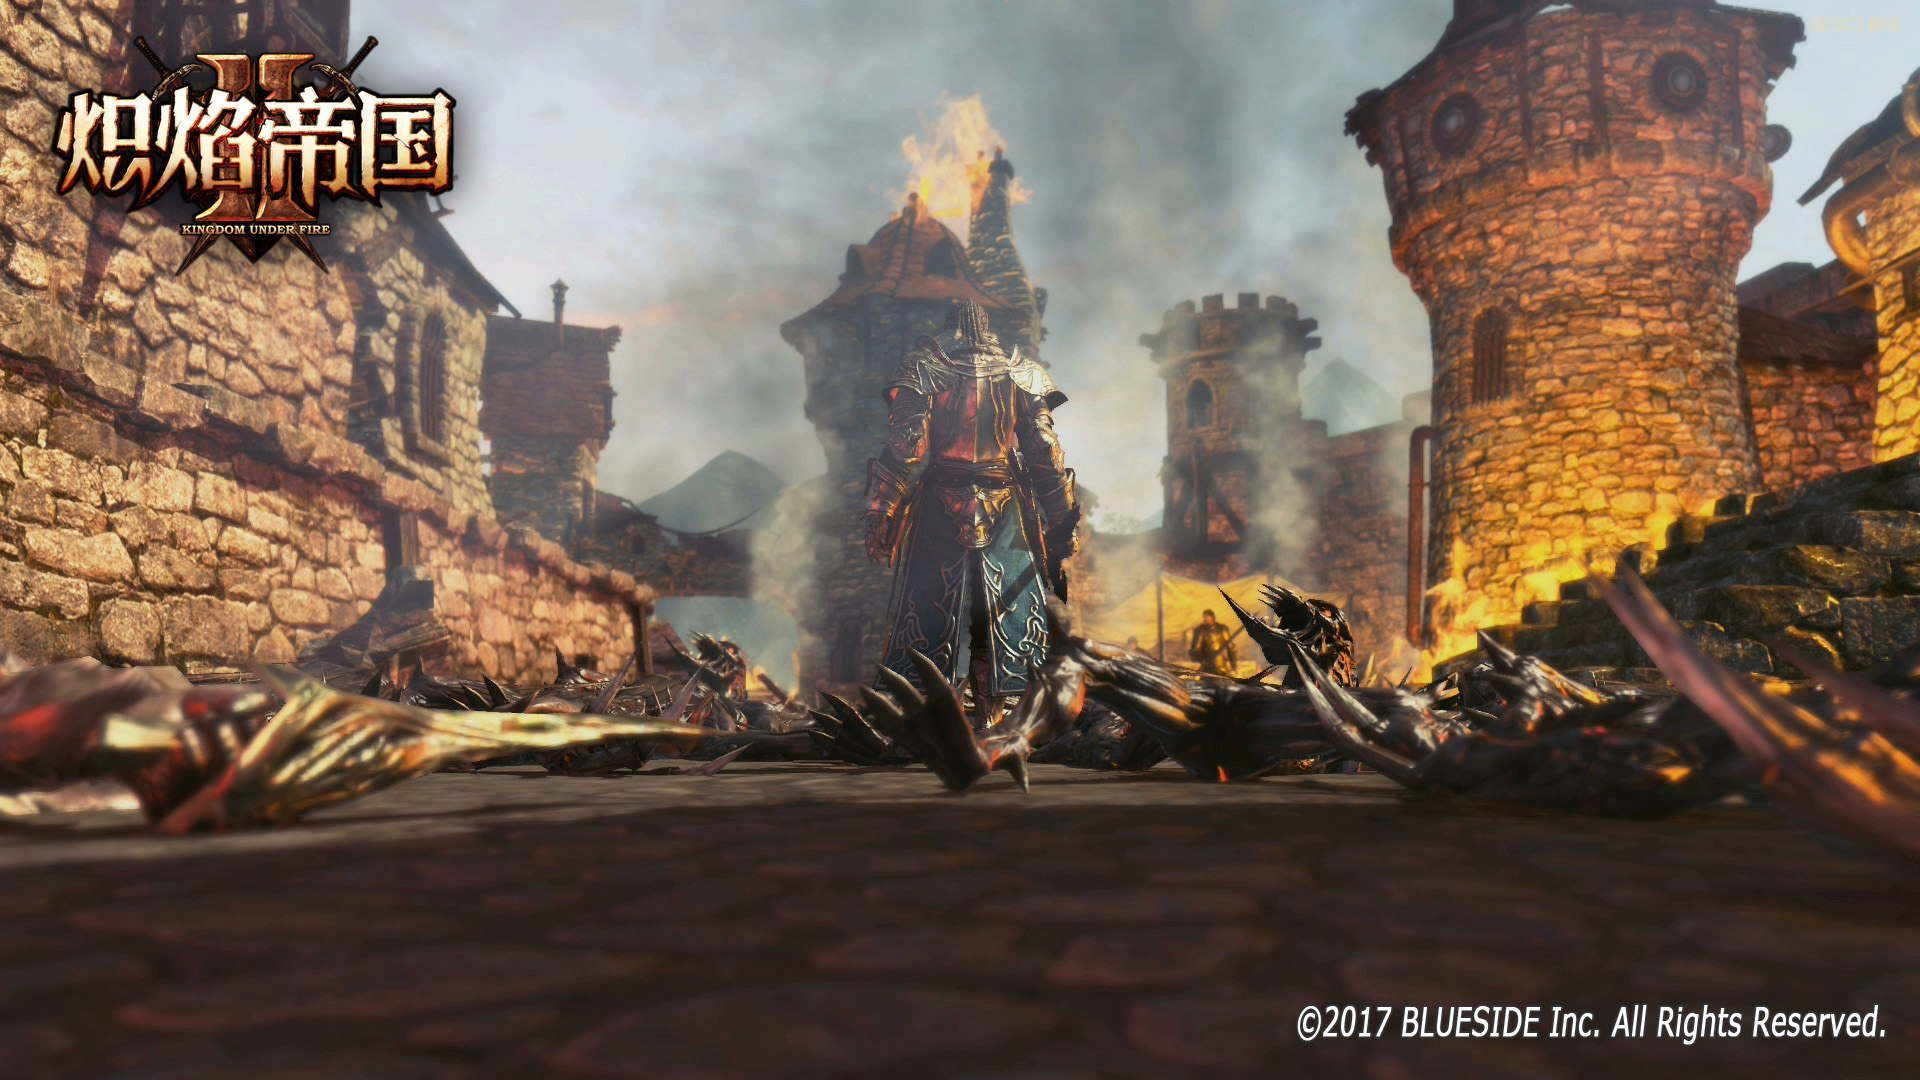 kingdom under fire 2 новая mmorpg